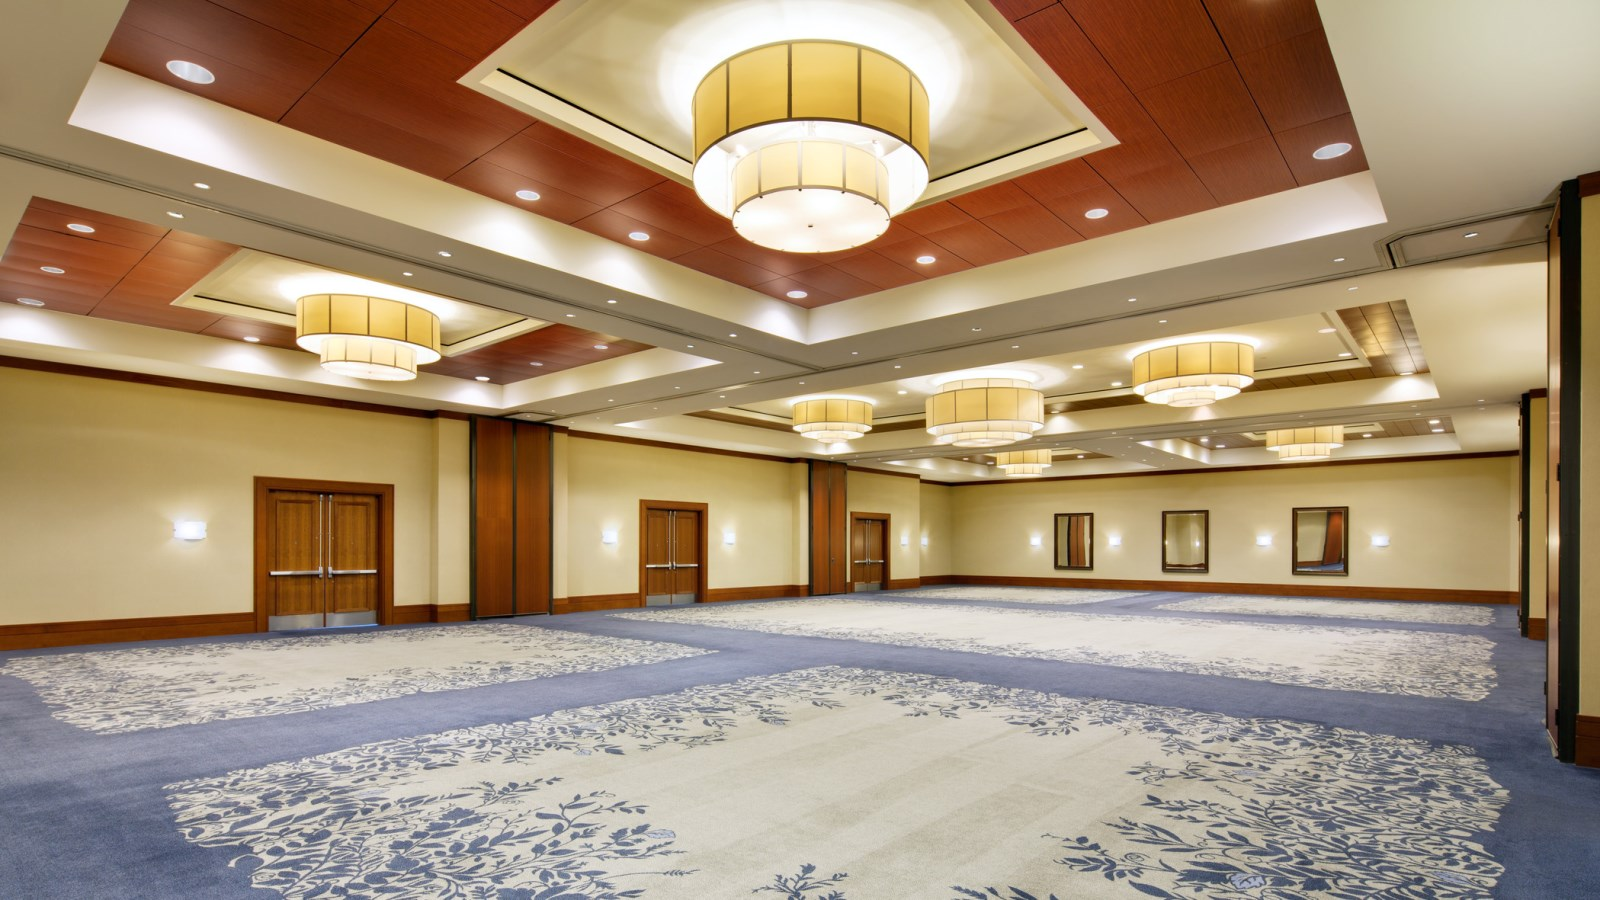 With a capacity of almost 600 people, the Wisteria Ballroom is a spacious venue for Energy Corridor events.